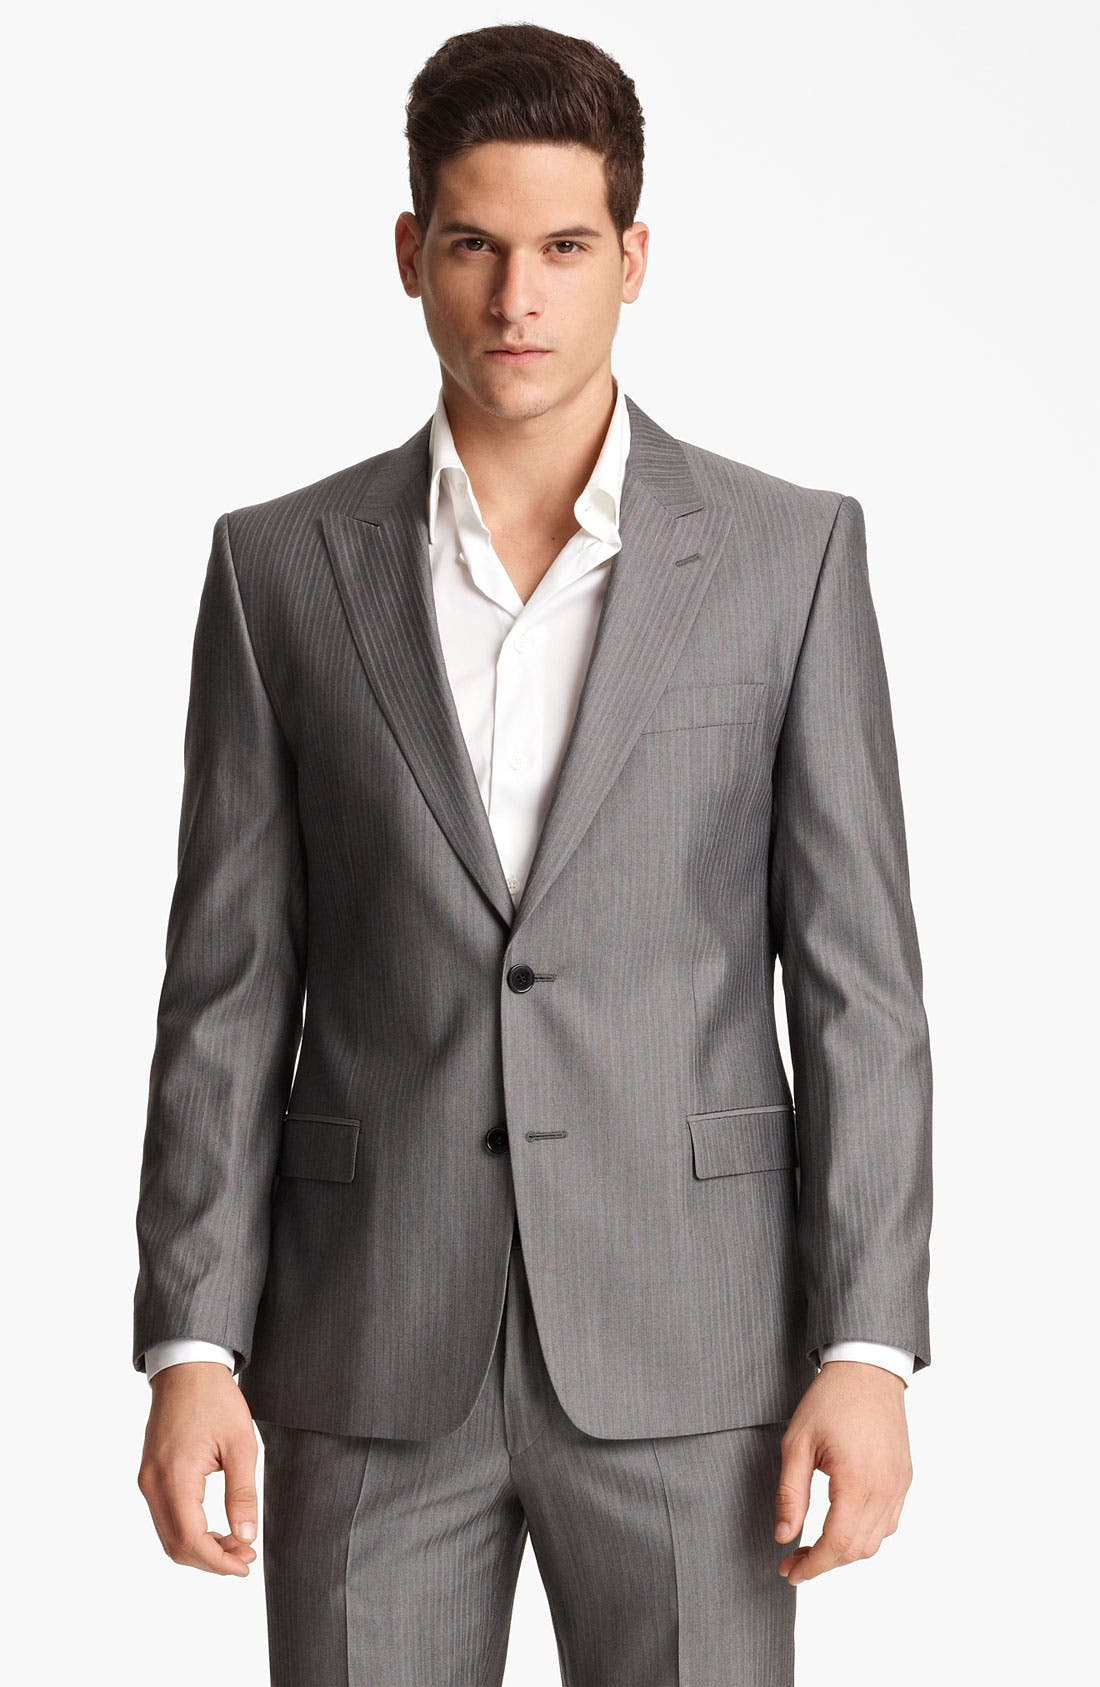 Alternate Image 1 Selected - Versace Trim Fit Stripe Suit